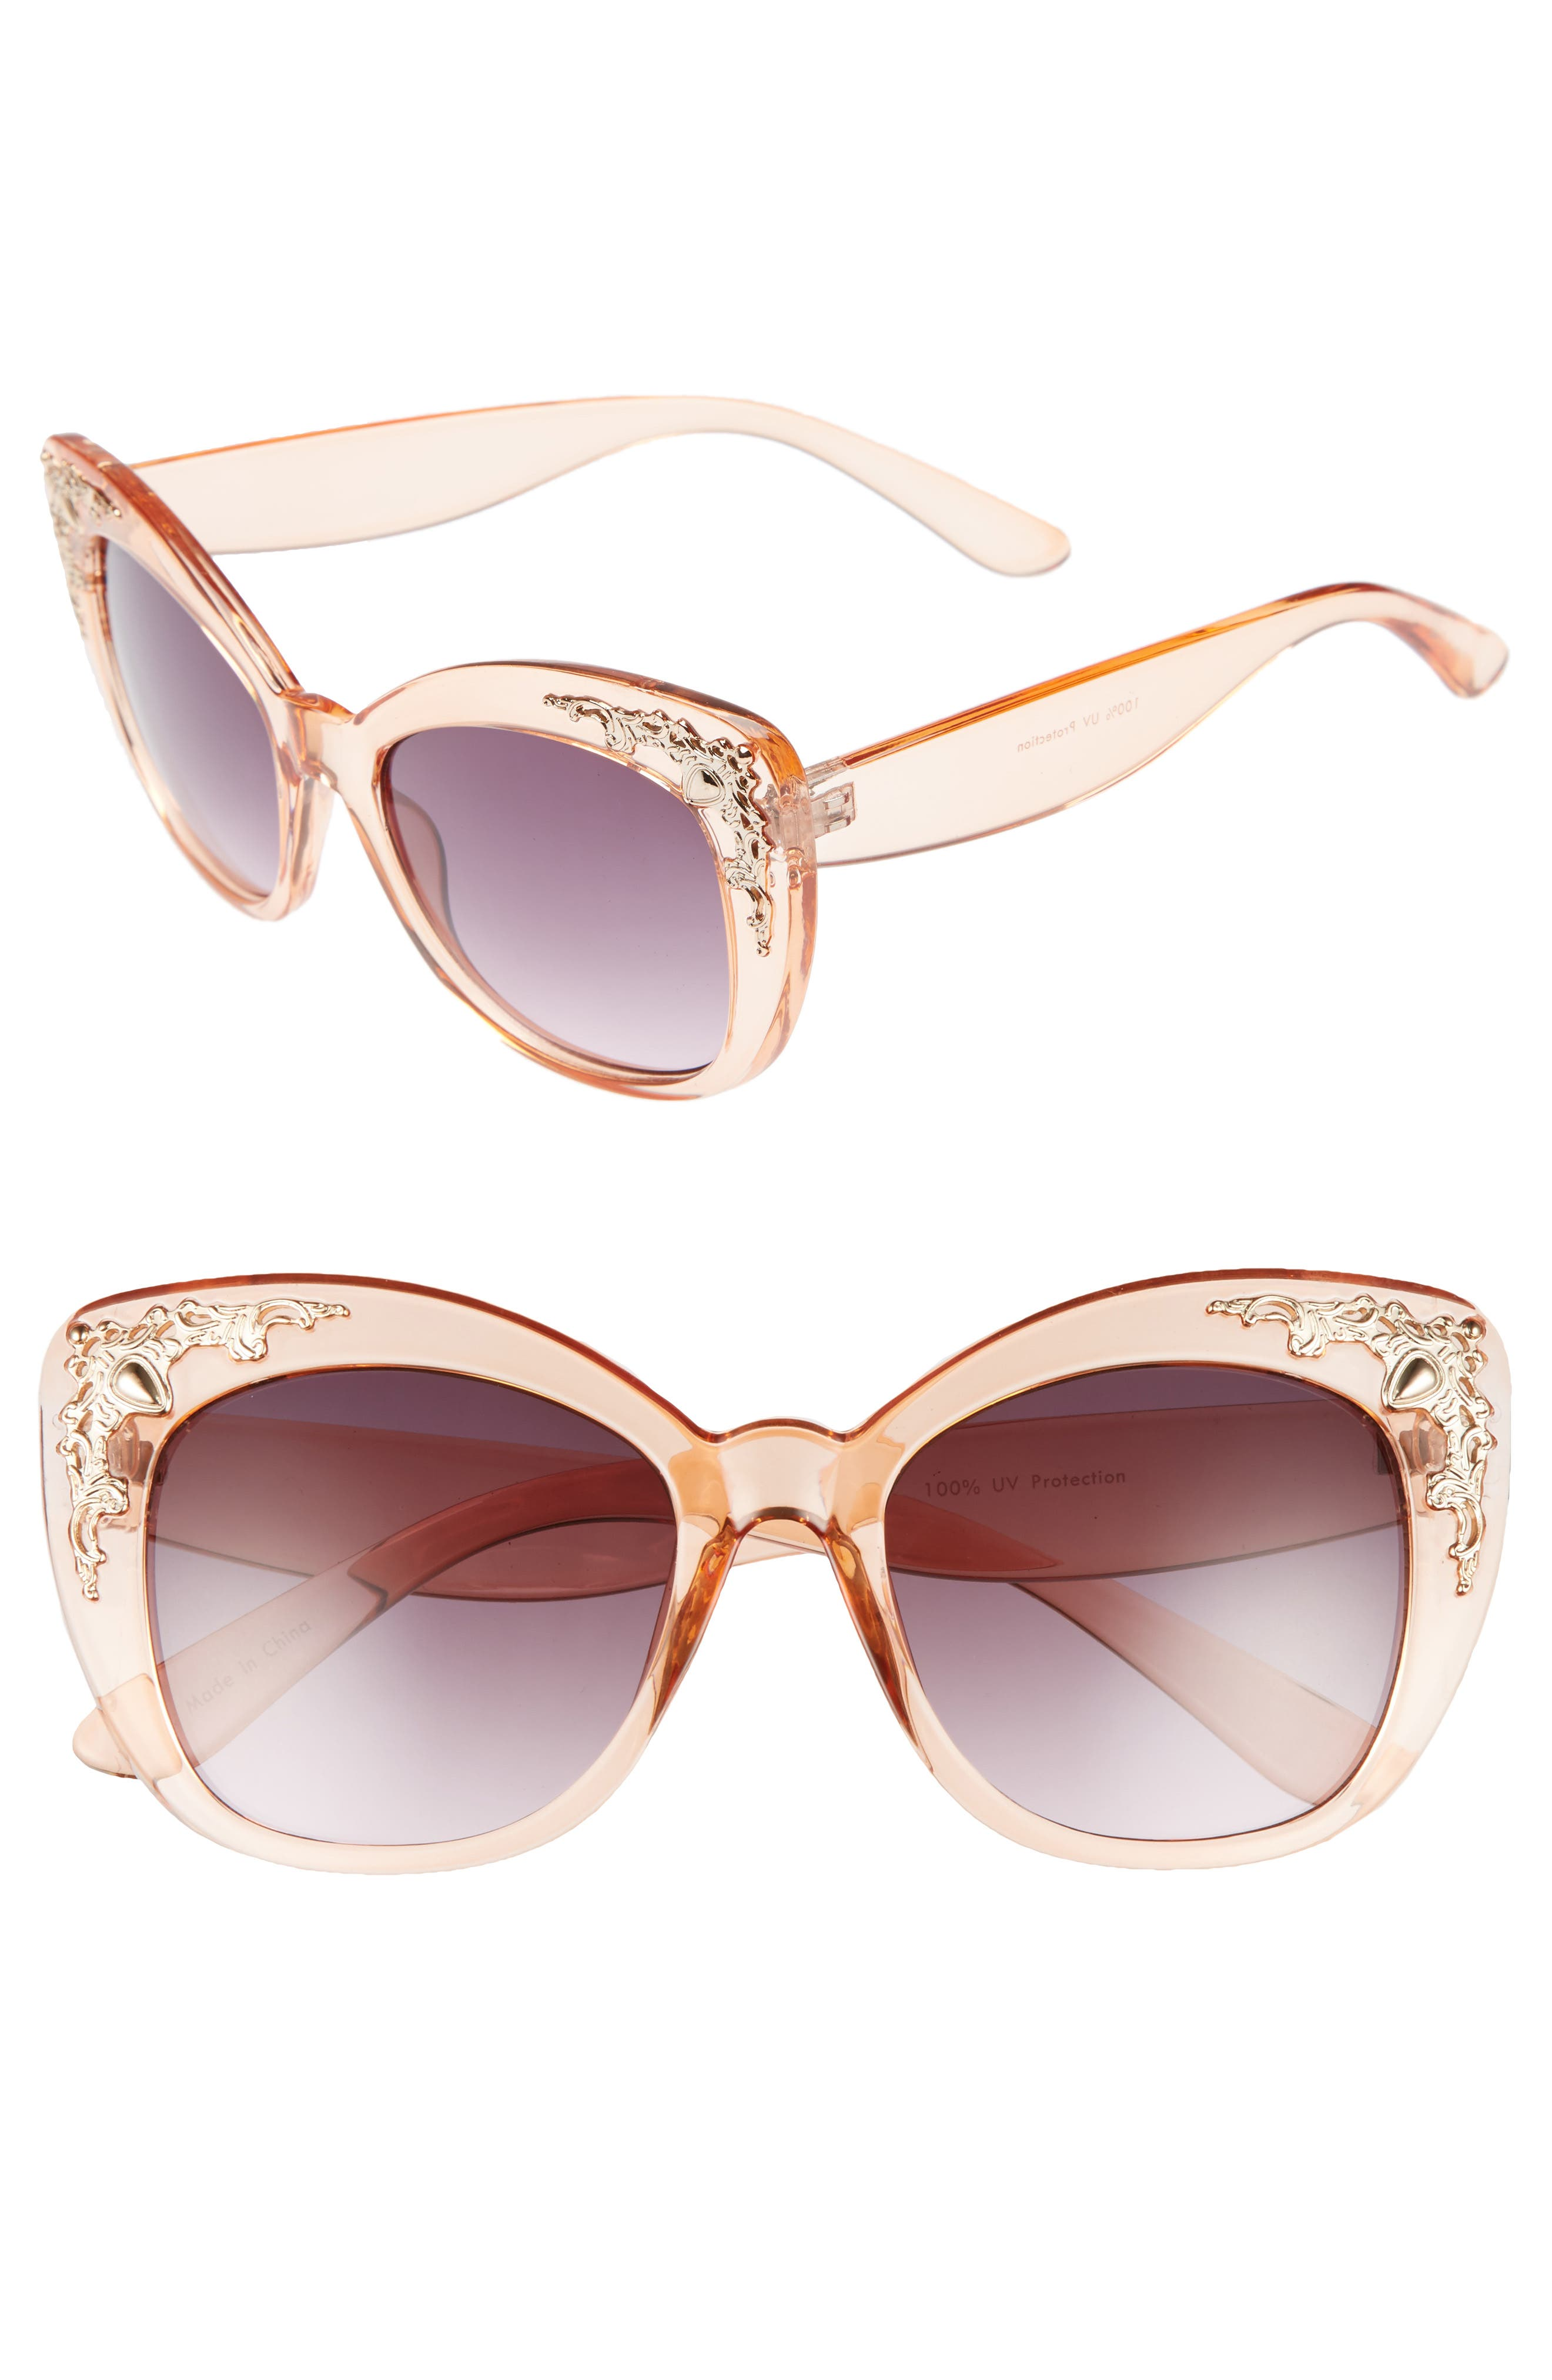 54mm Embellished Cat Eye Sunglasses,                         Main,                         color, Gold